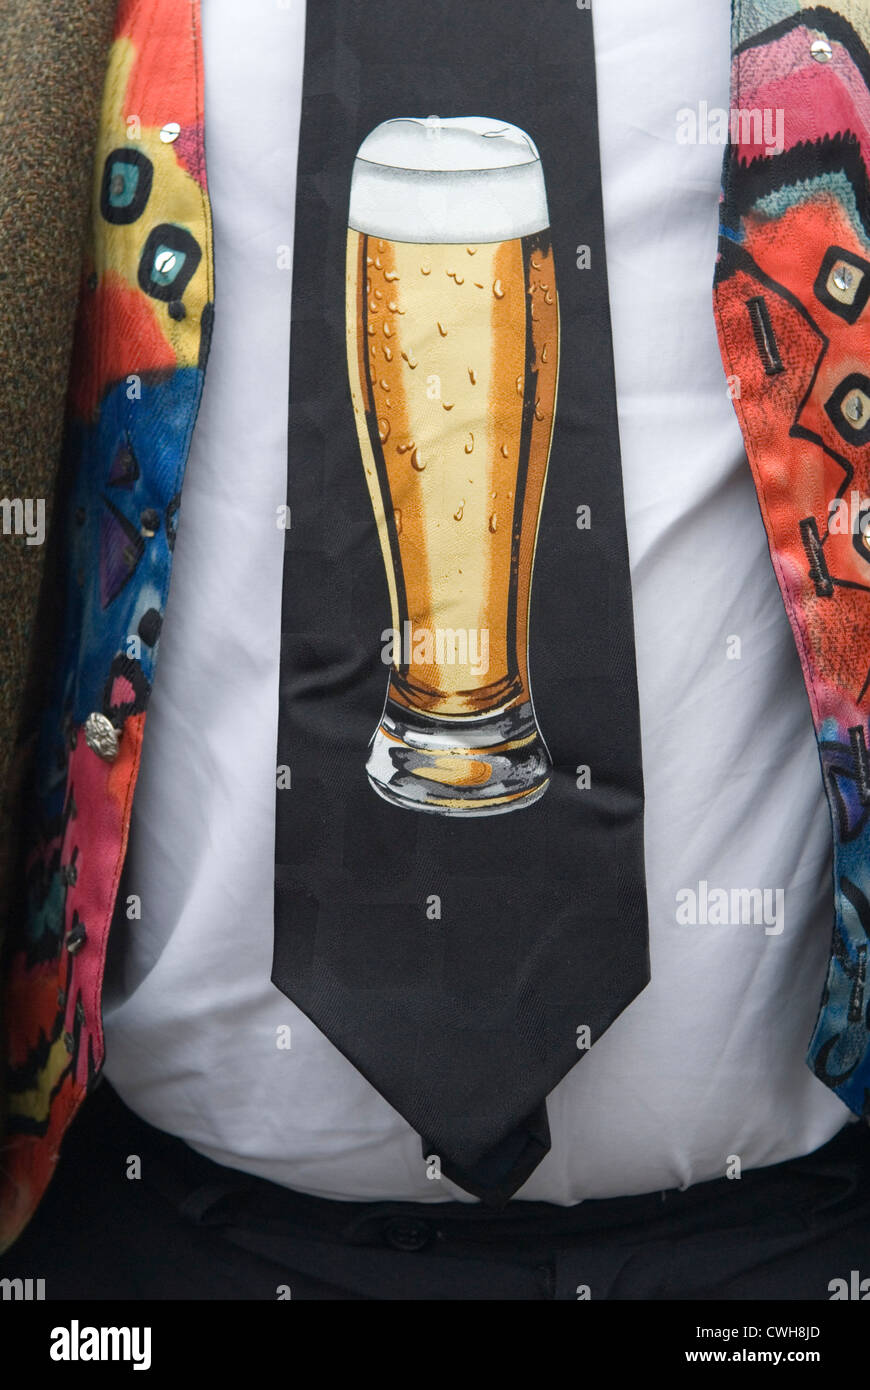 Man wearing a colourful waistcoat, and a tie with a design of a pint of beer  Uk.  HOMER SYKES - Stock Image